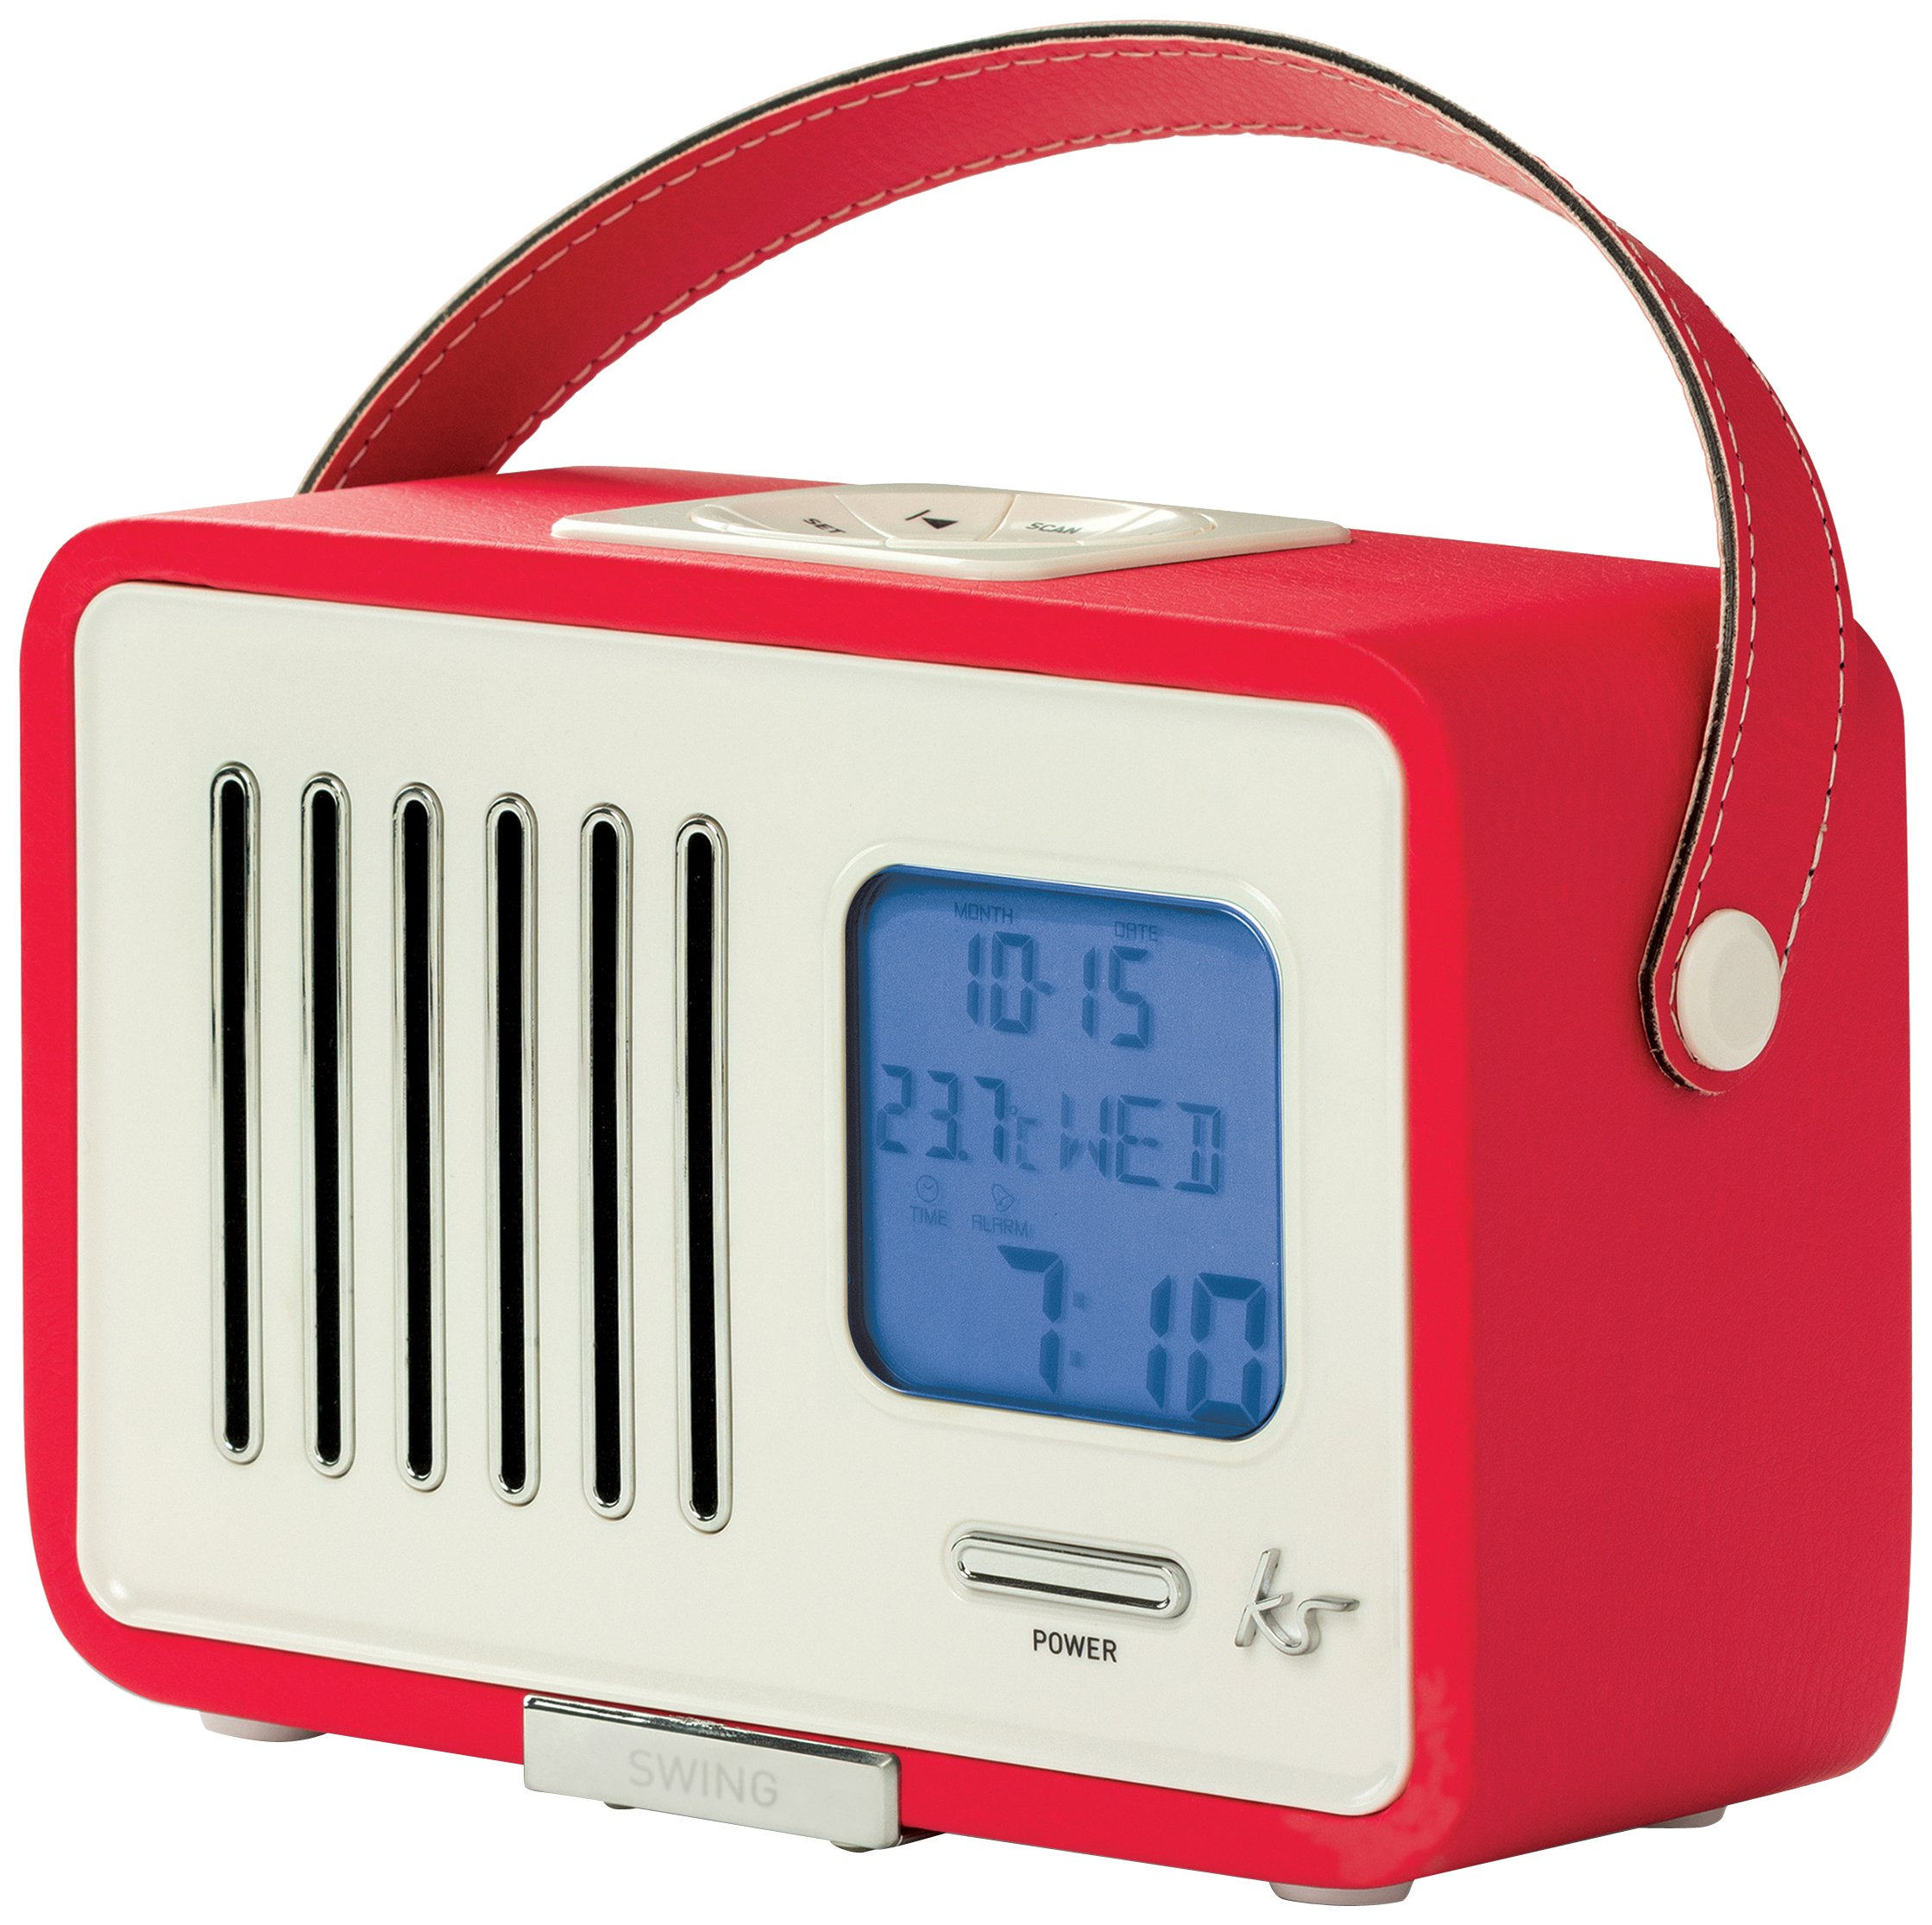 kitsound swing mini portable 1920s style retro fm radio with alarm clock red ebay. Black Bedroom Furniture Sets. Home Design Ideas